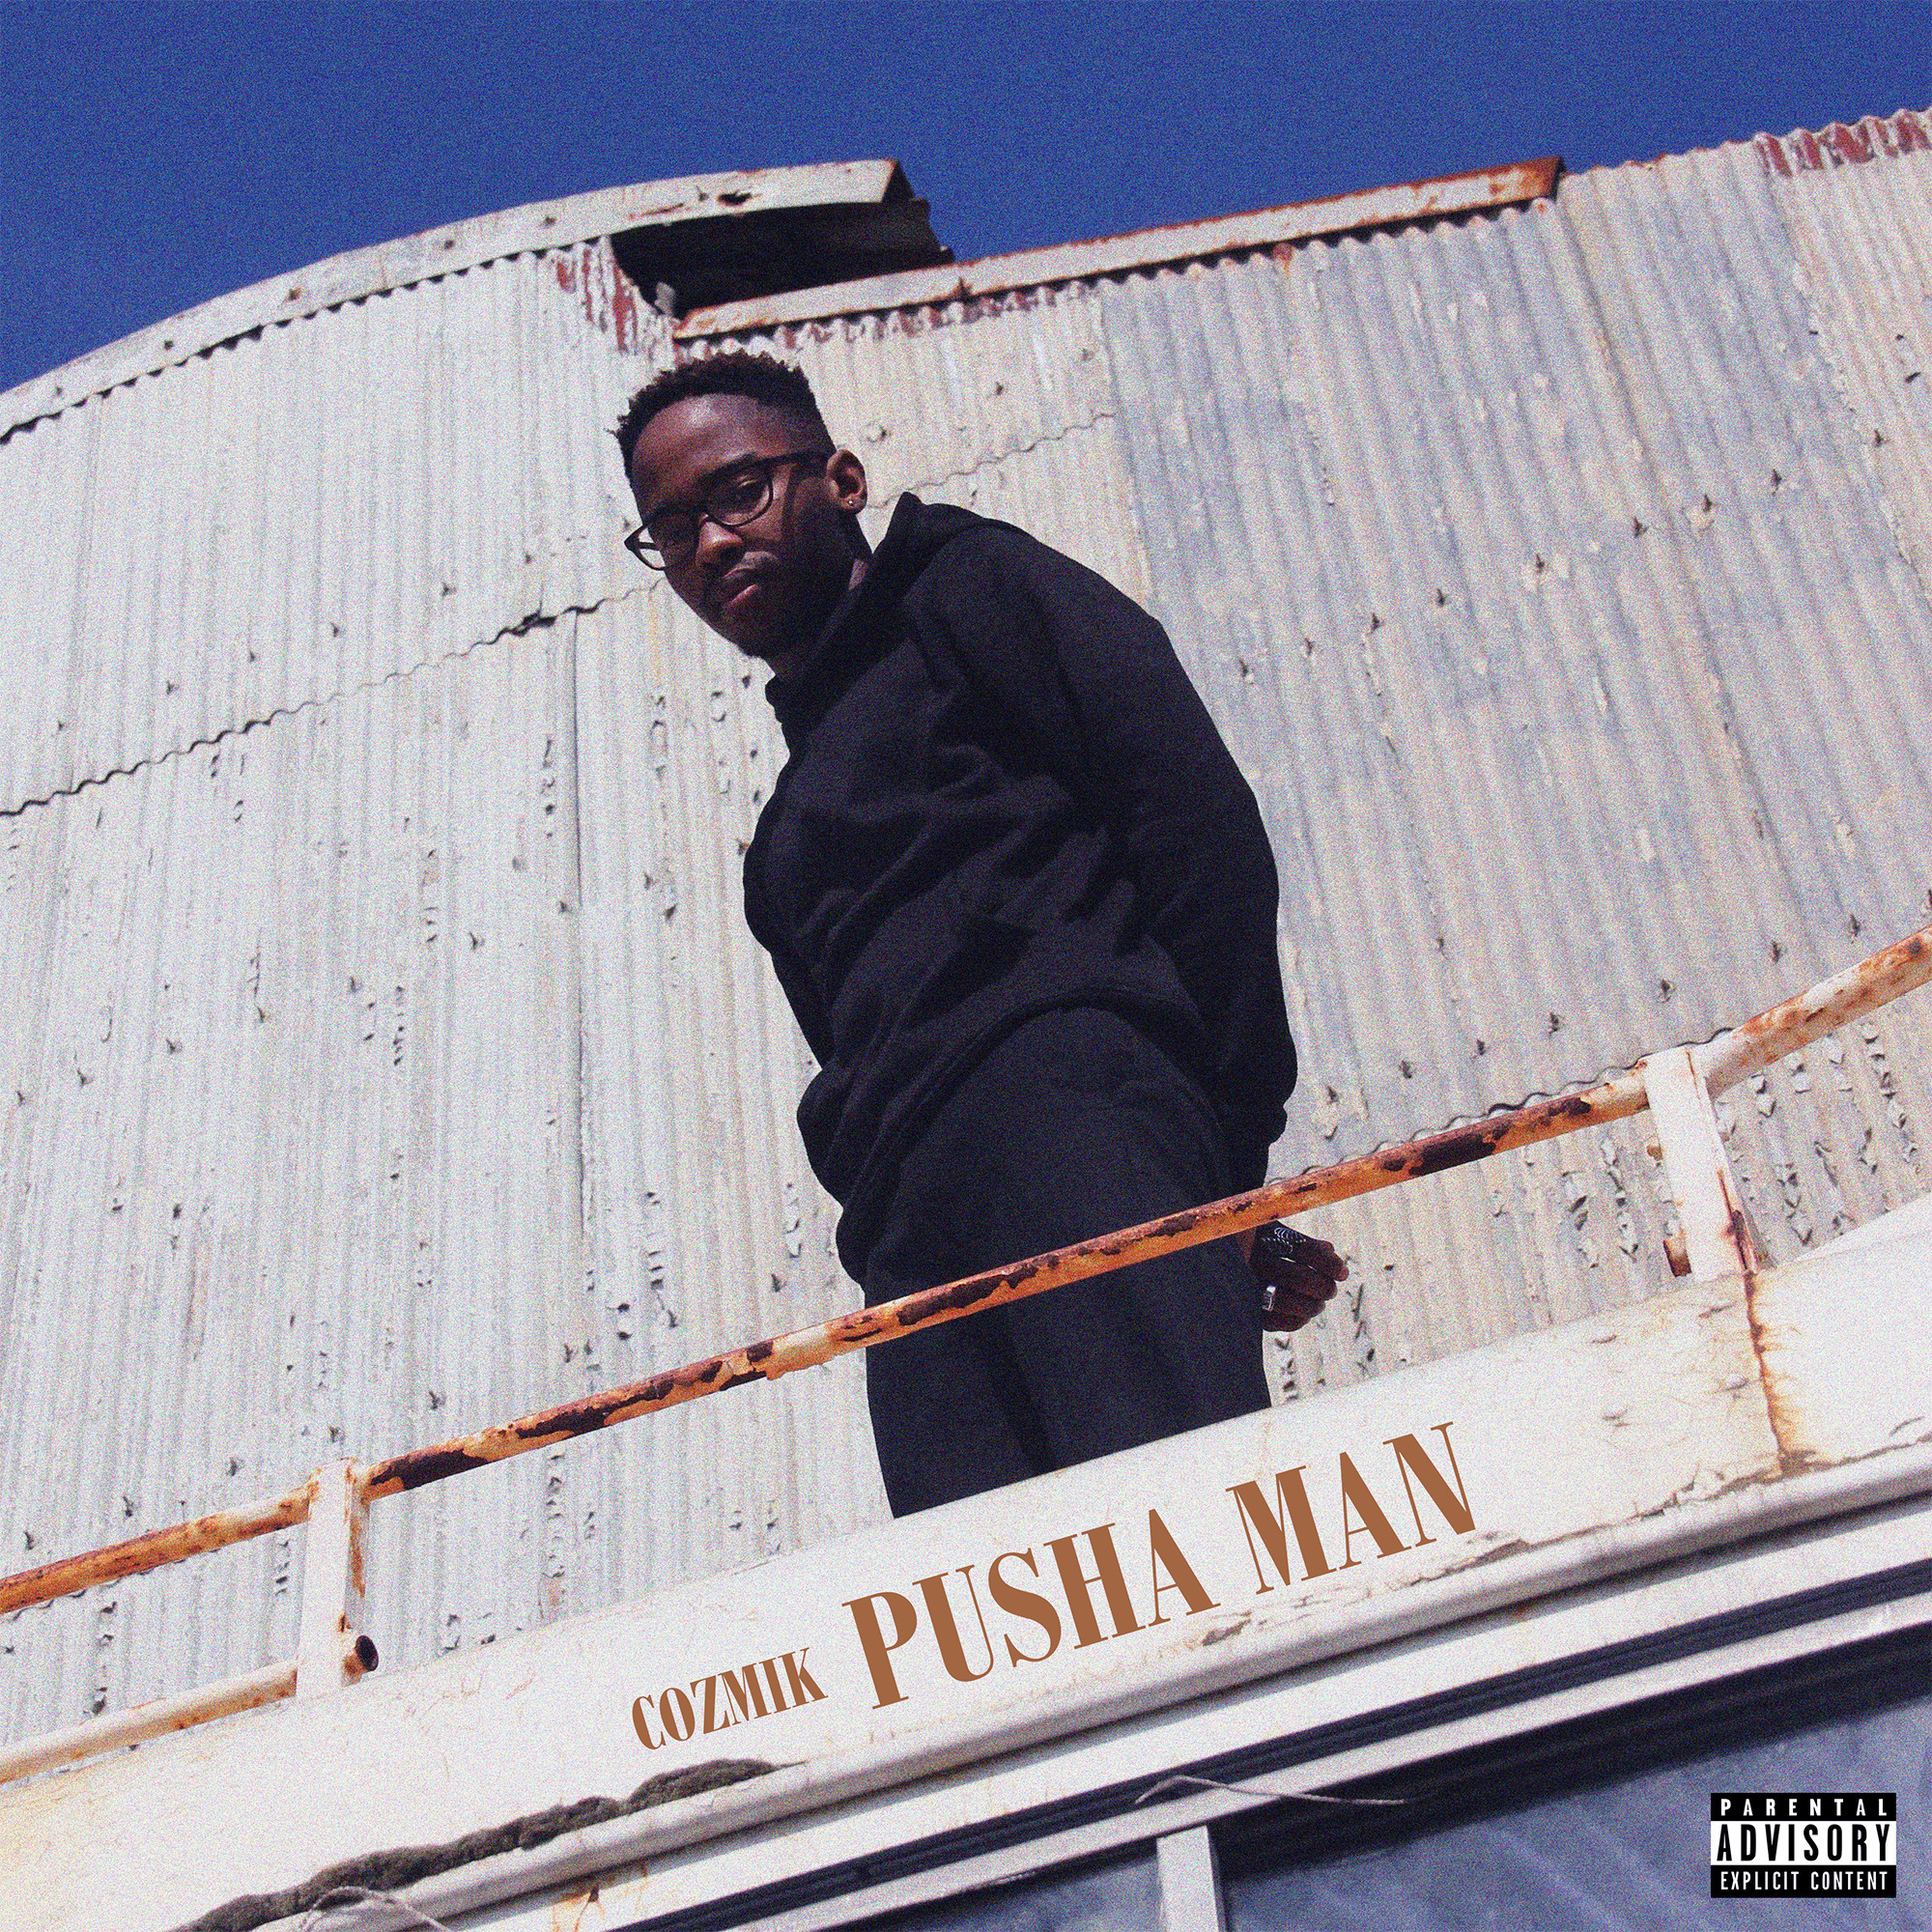 cozmik Listen To Cozmik's 'Pusha Man' Debut Project Pusha Man Front Cover